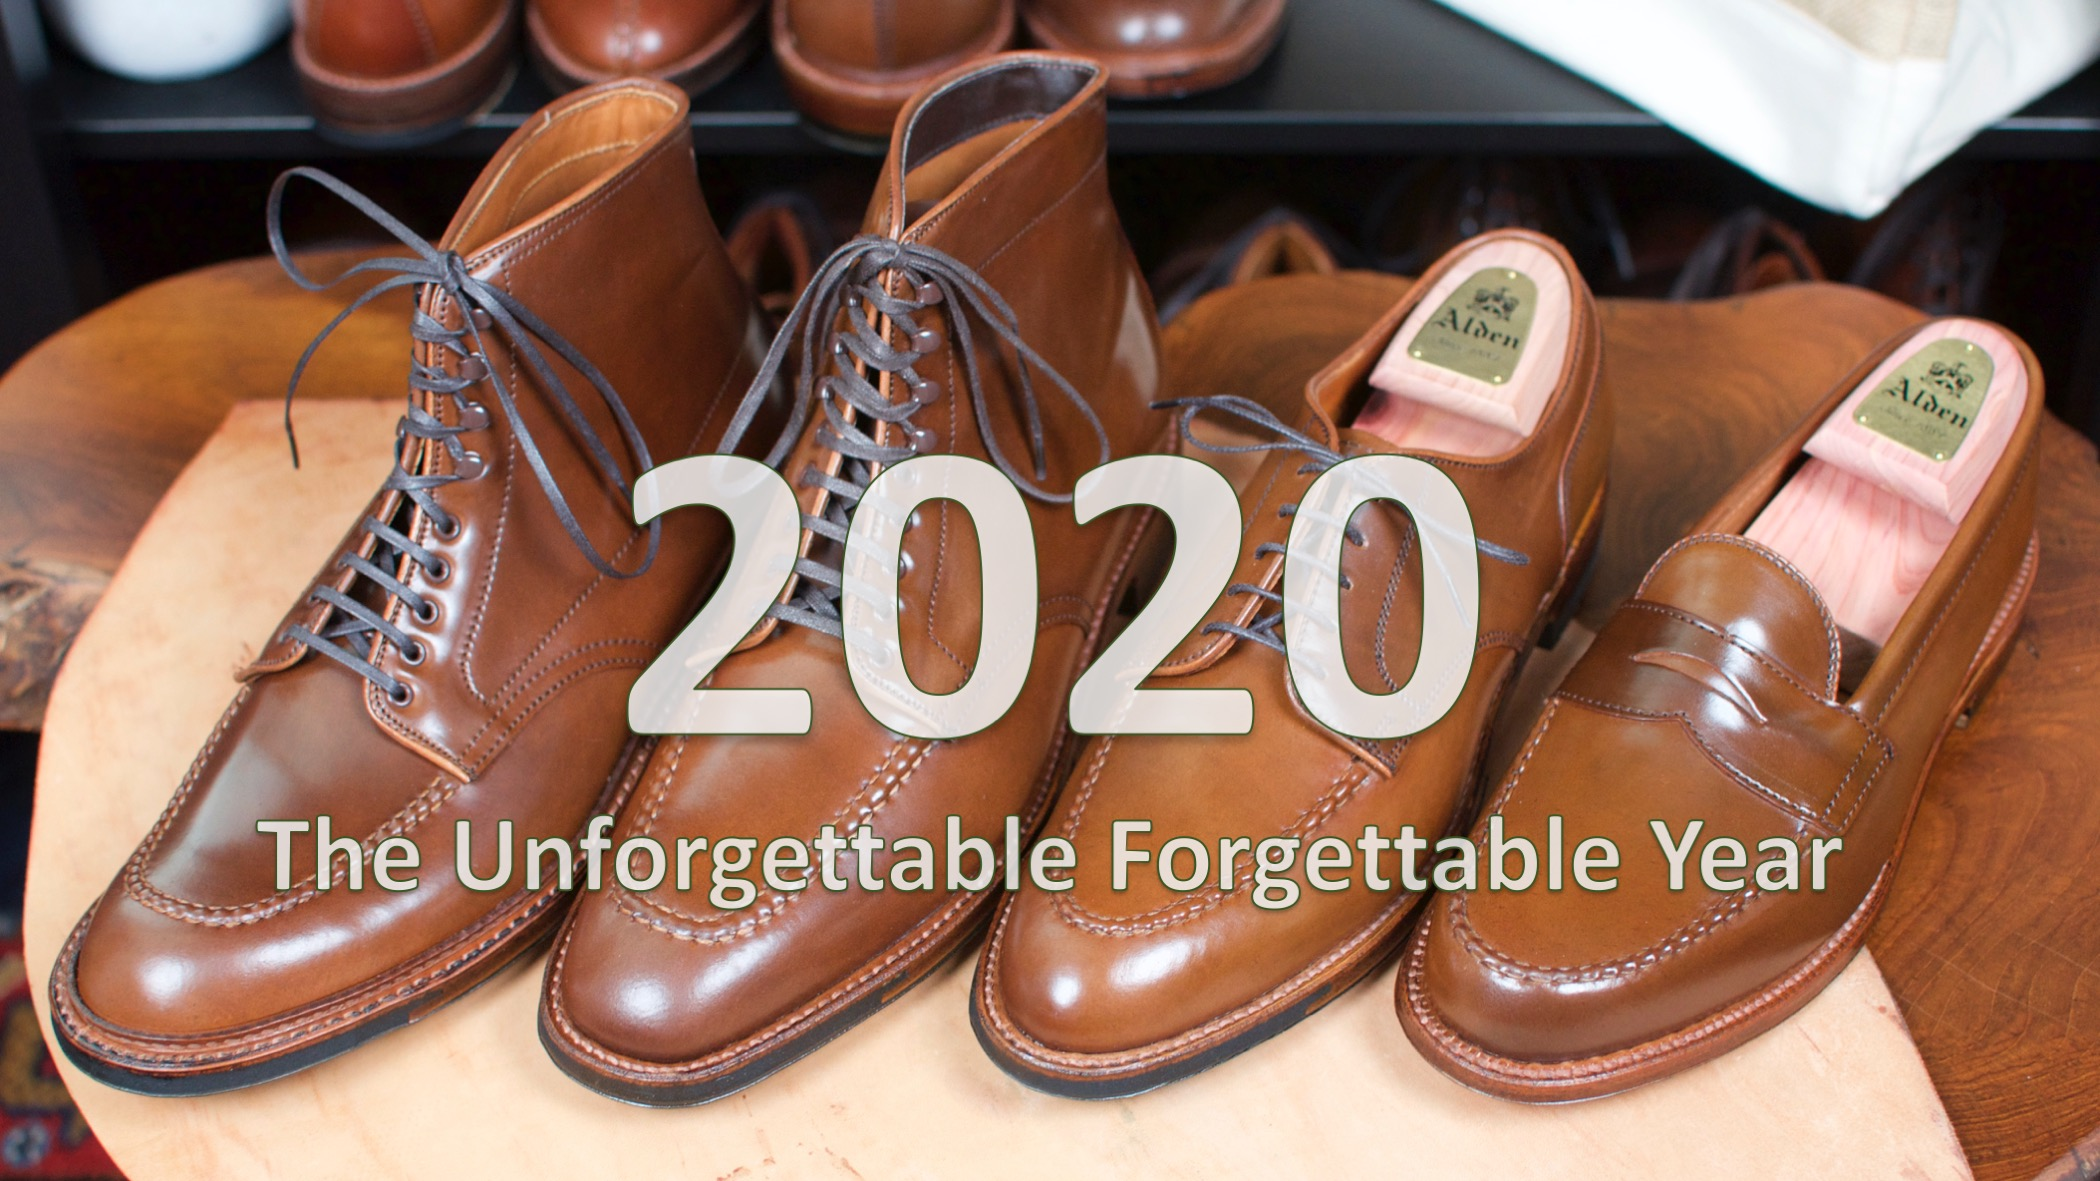 2020: The Unforgettable Forgettable Year